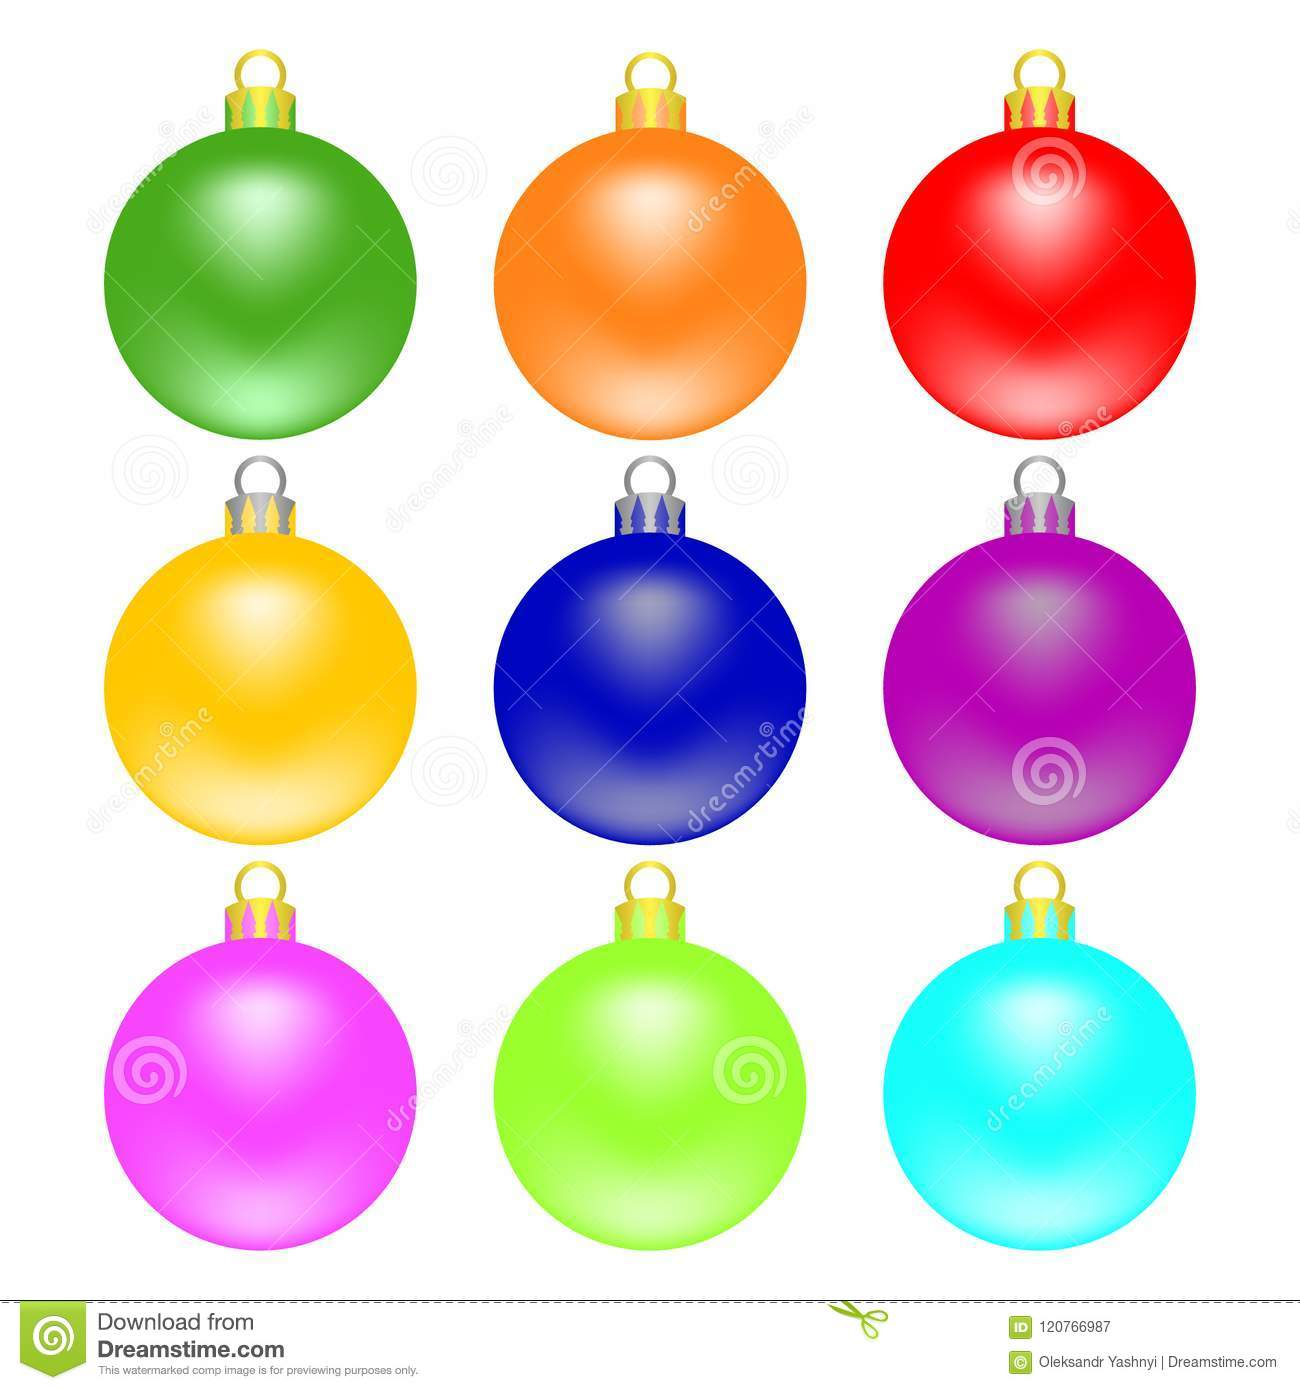 Colorful Christmas Tree Vector.Colorful Christmas Balls Set Isolated On White Background